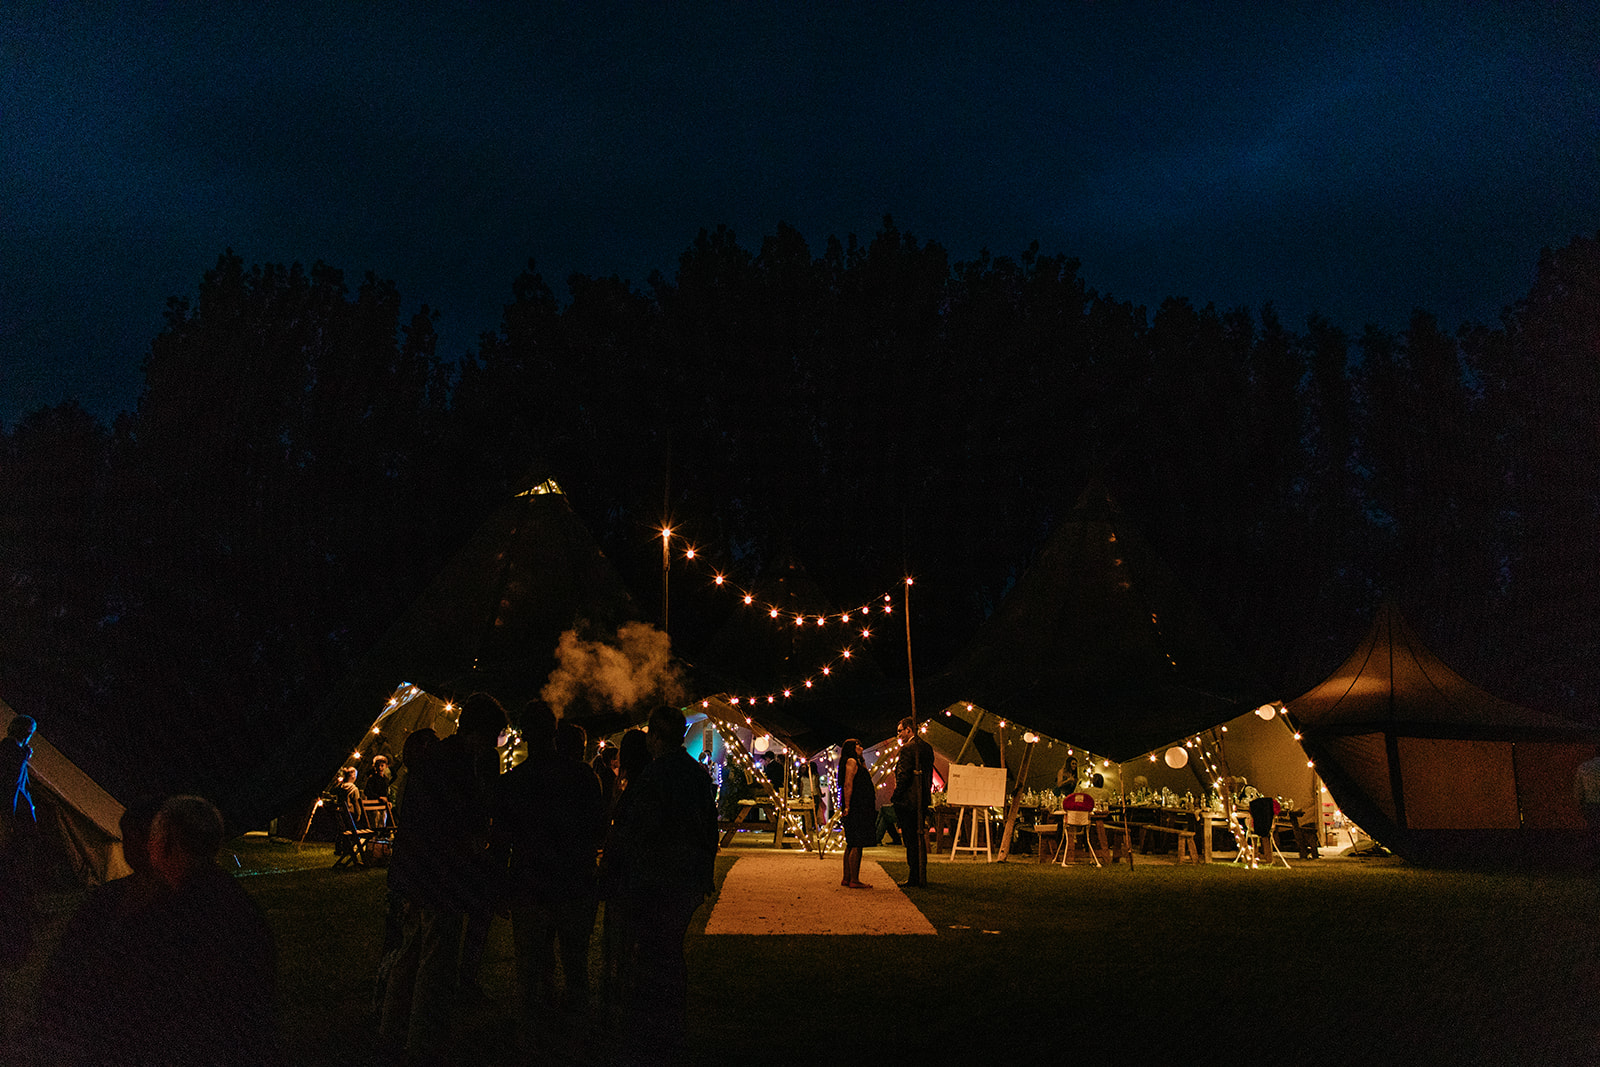 Wedding tipi at night